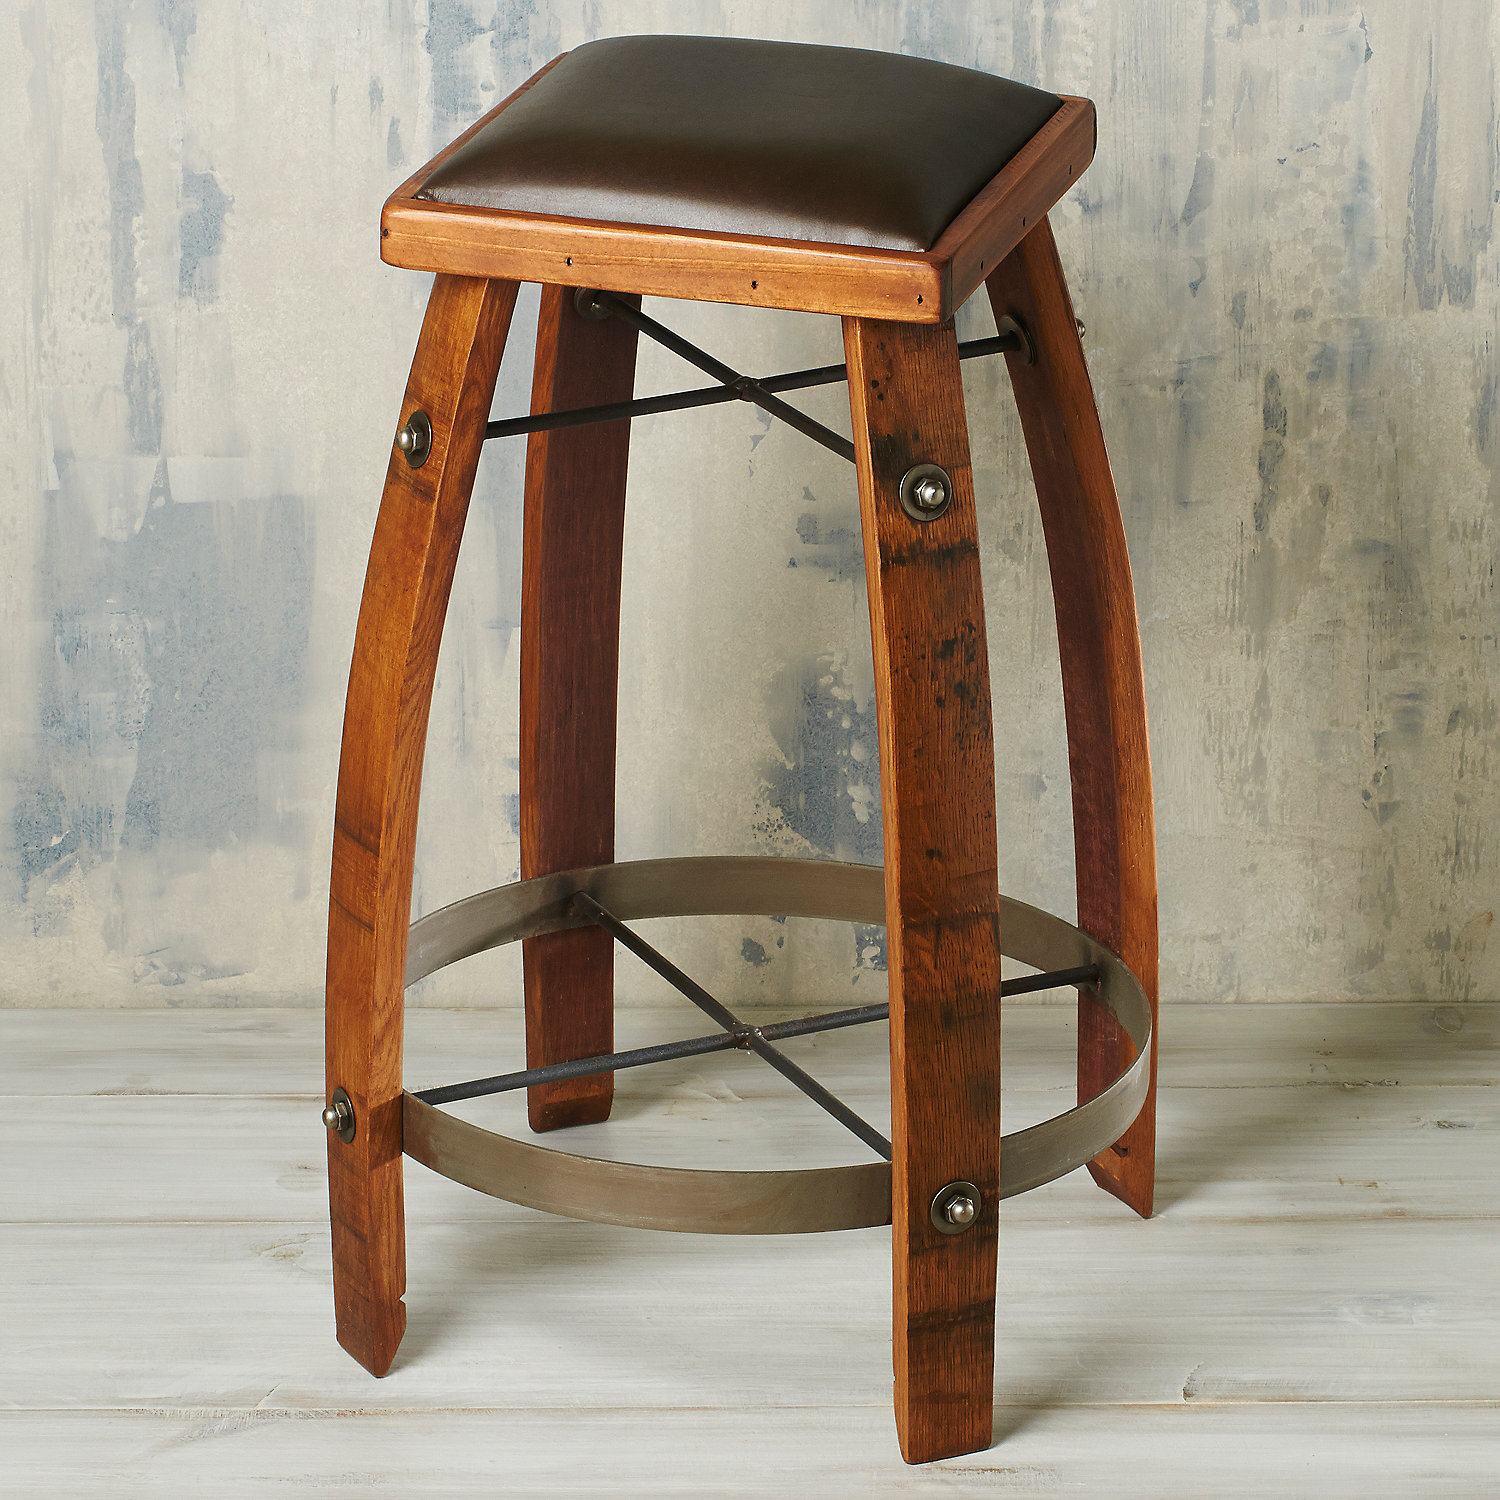 Vintage Oak Wine Barrel Bar Stool 24 Inches With Chocolate Leather Seat Enthusiast